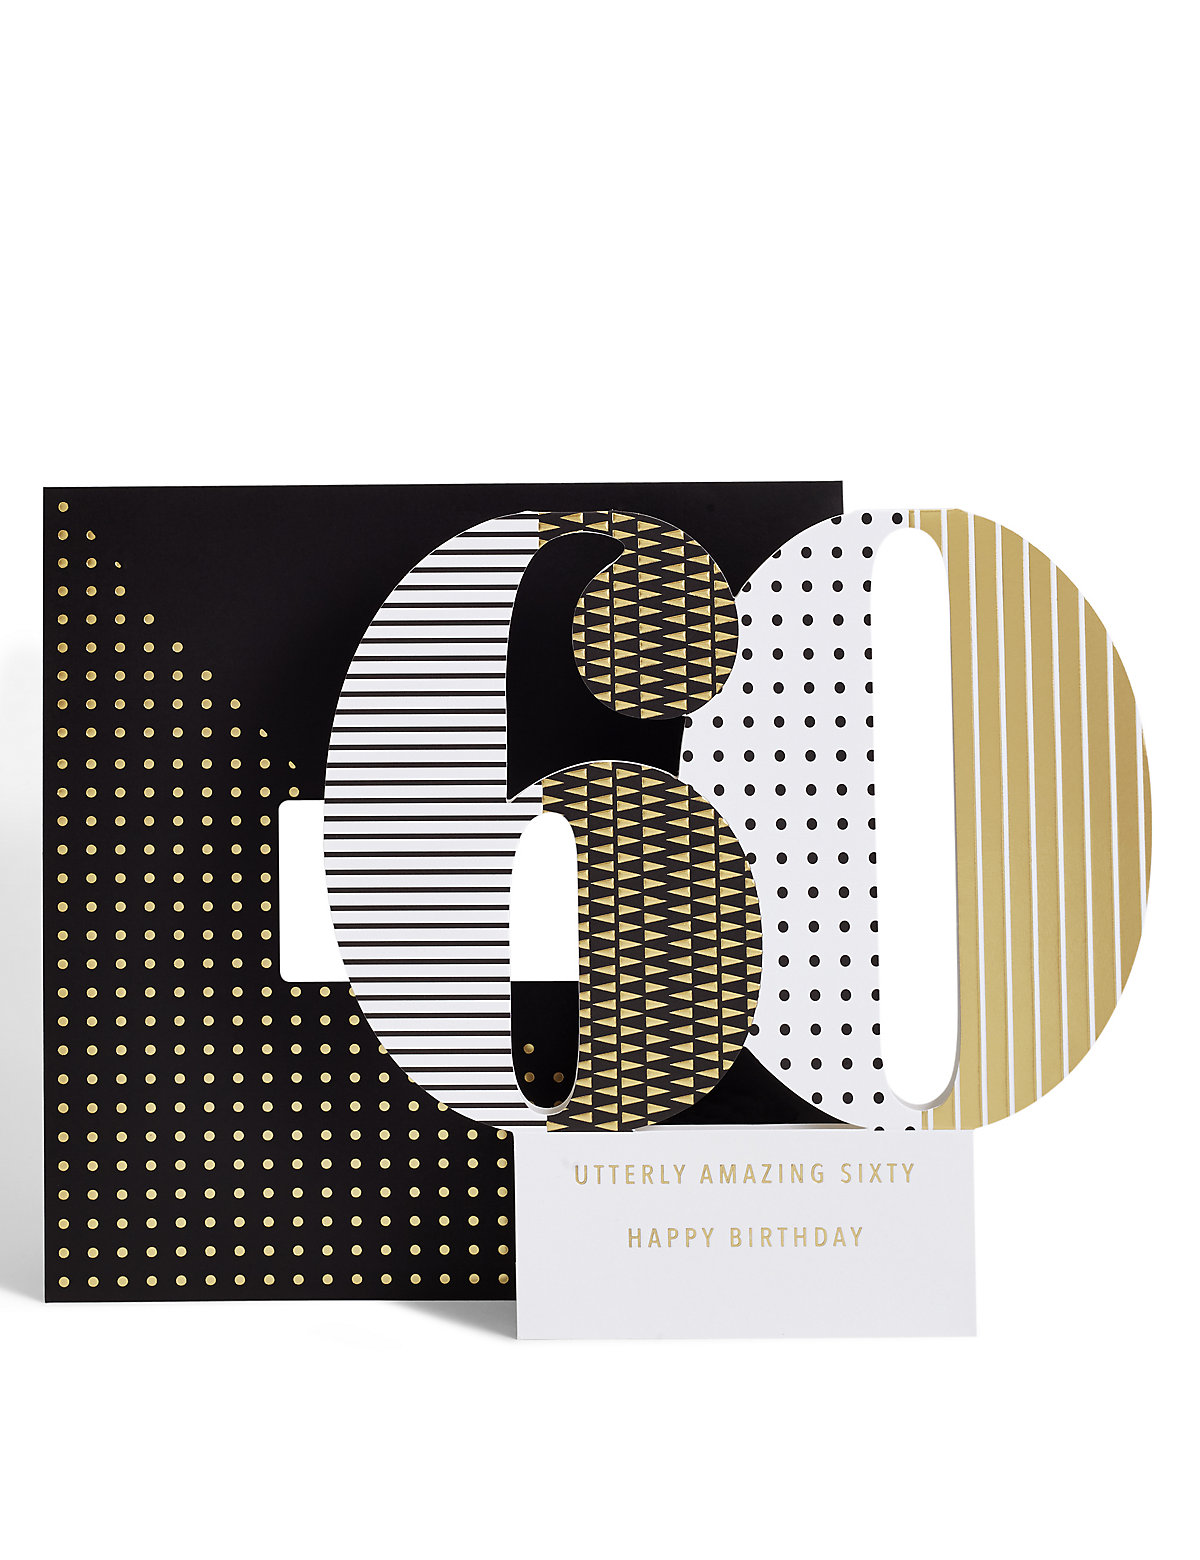 Age 60 3-D Pop up Birthday Card